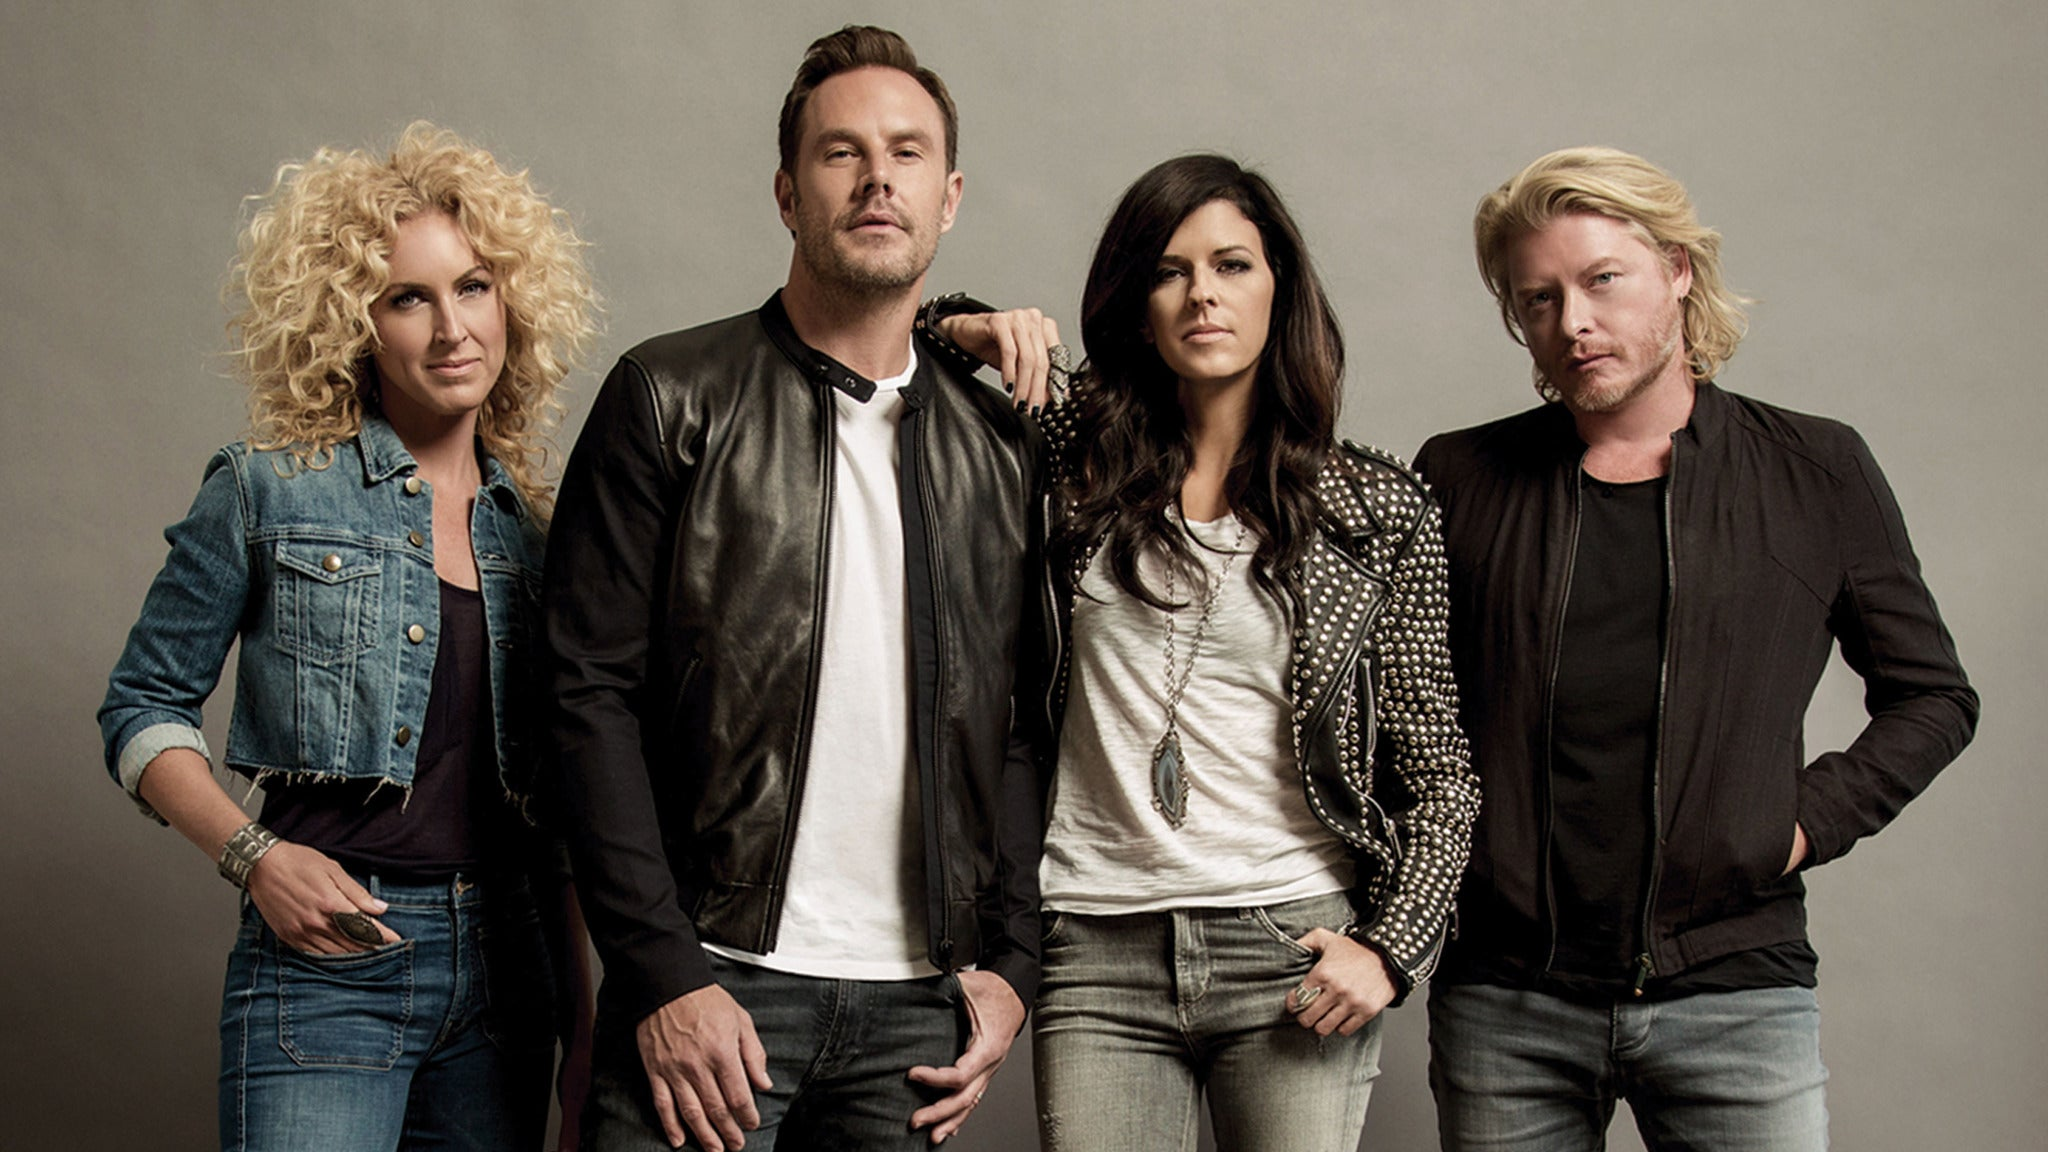 Little Big Town: The Breakers Tour at Mohegan Sun Arena